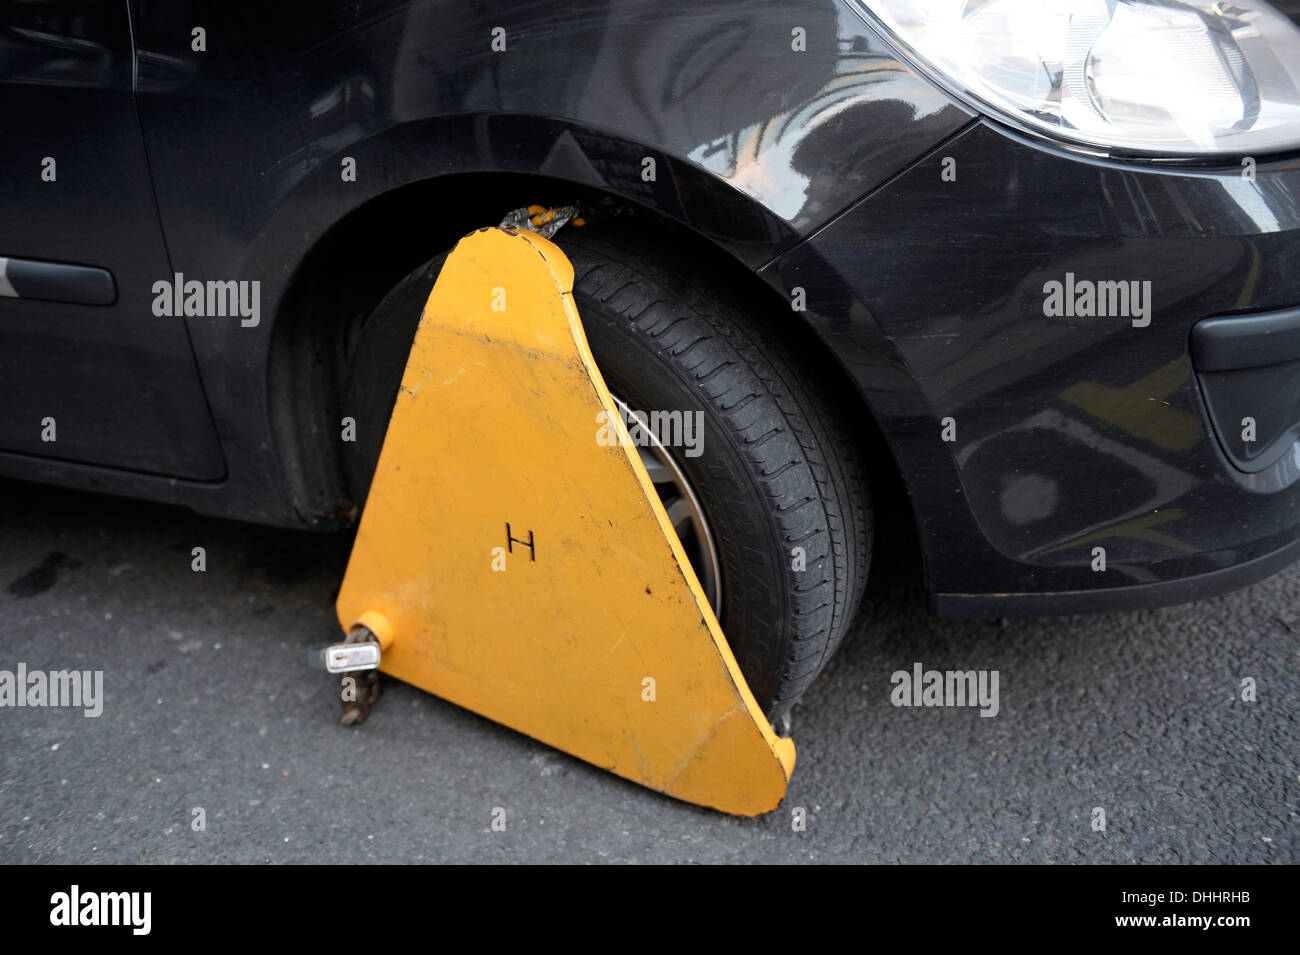 Immobilizer, wheel clamp on the wheel of a car parked in a